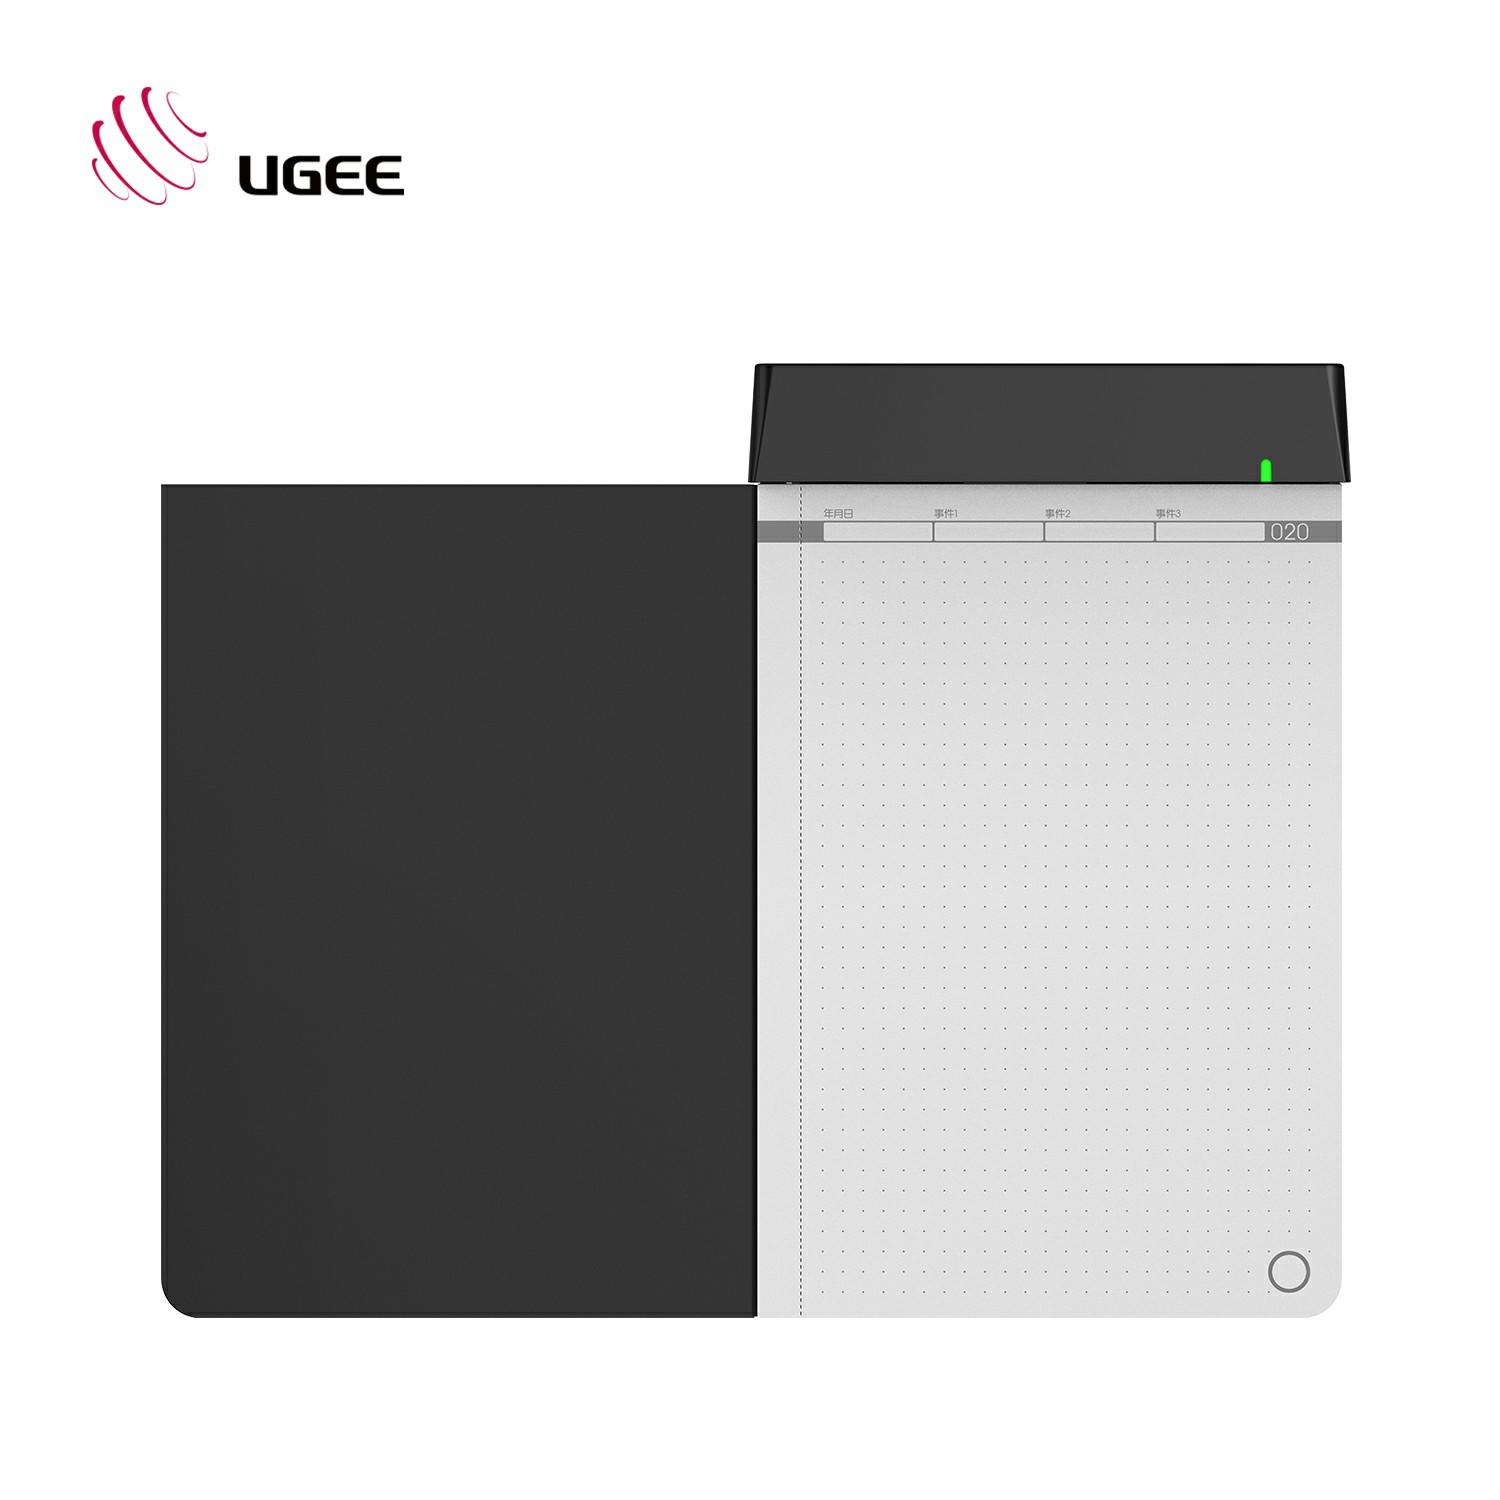 Ugee-Find From Ugee Technology